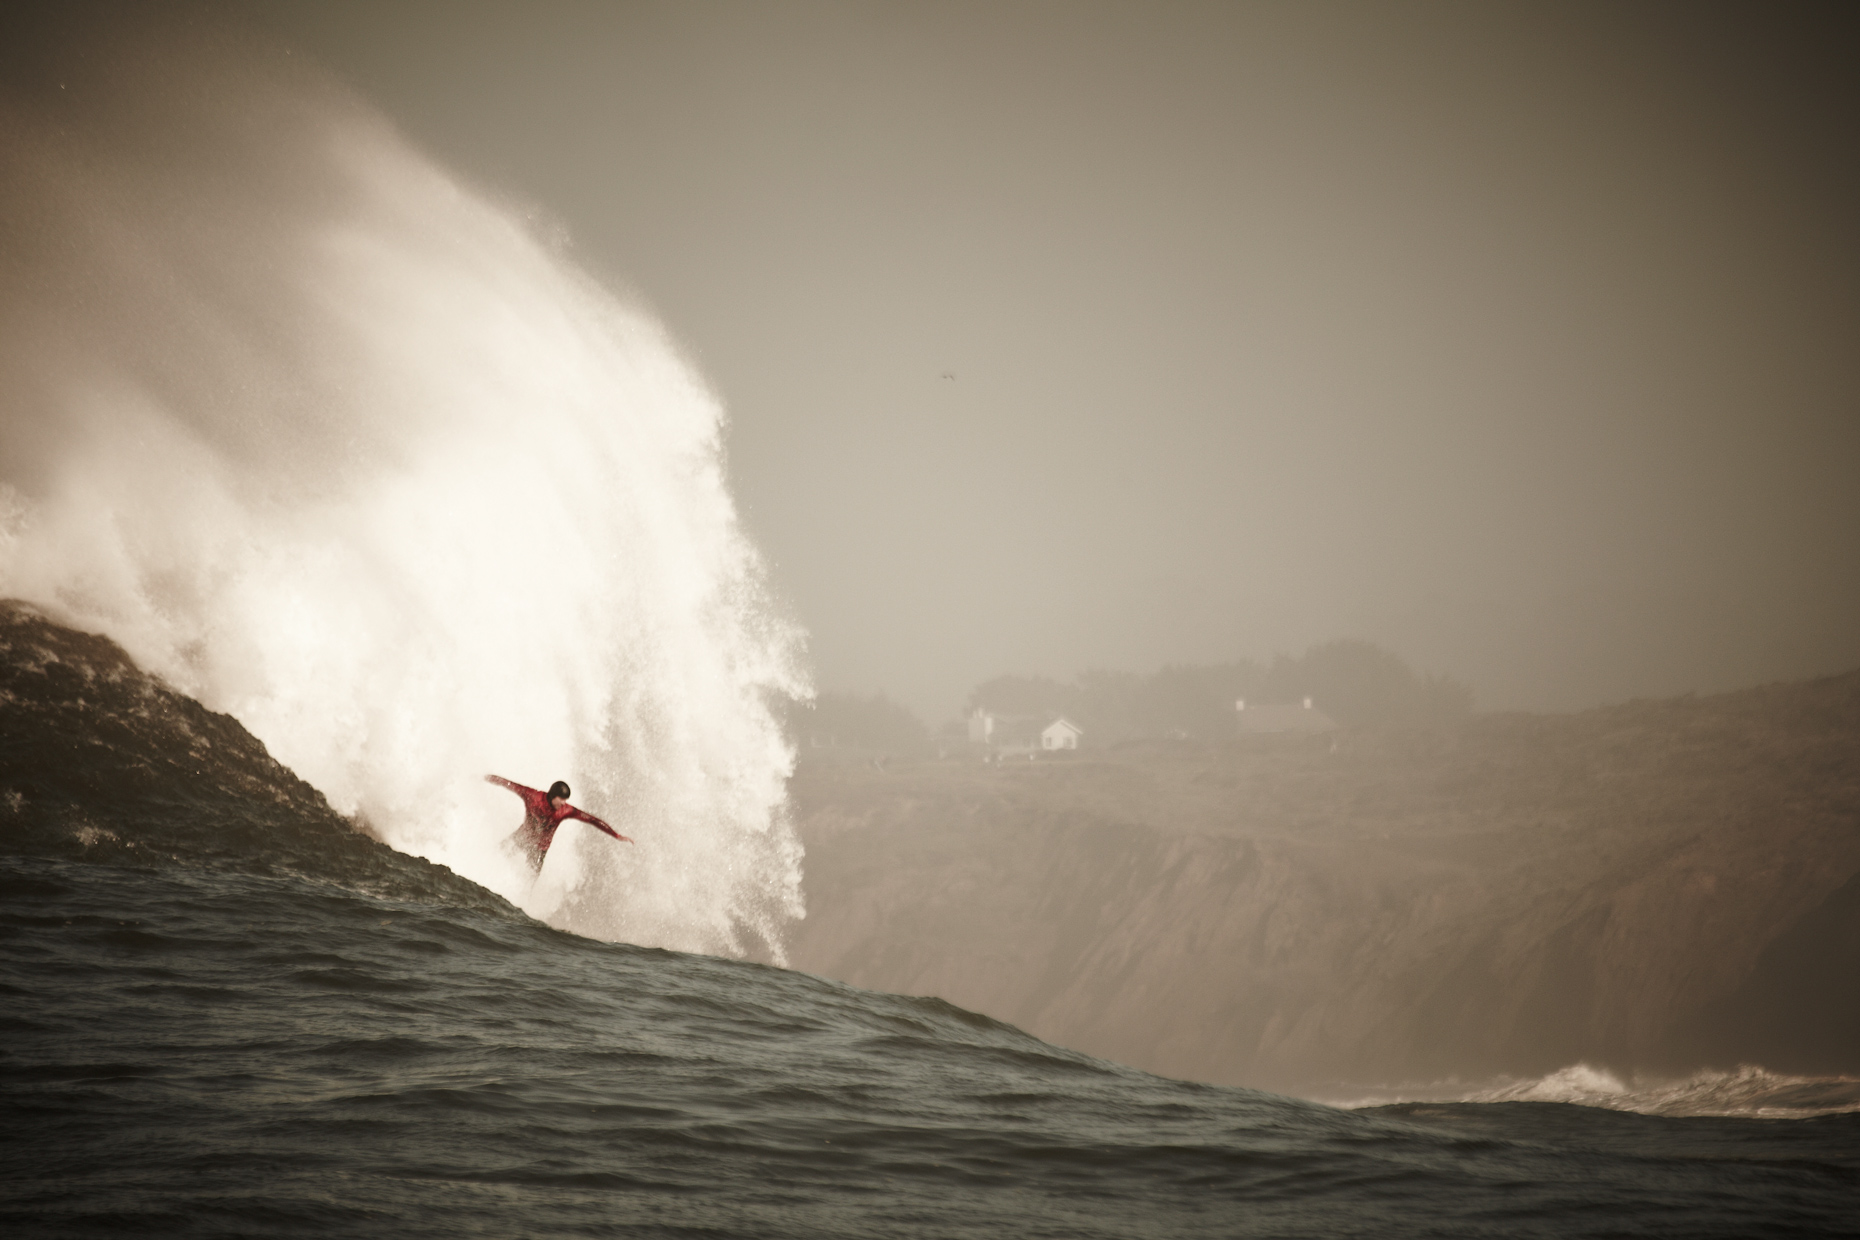 Projects Action Photography Derek Israelsen 008 Surfing The Wave